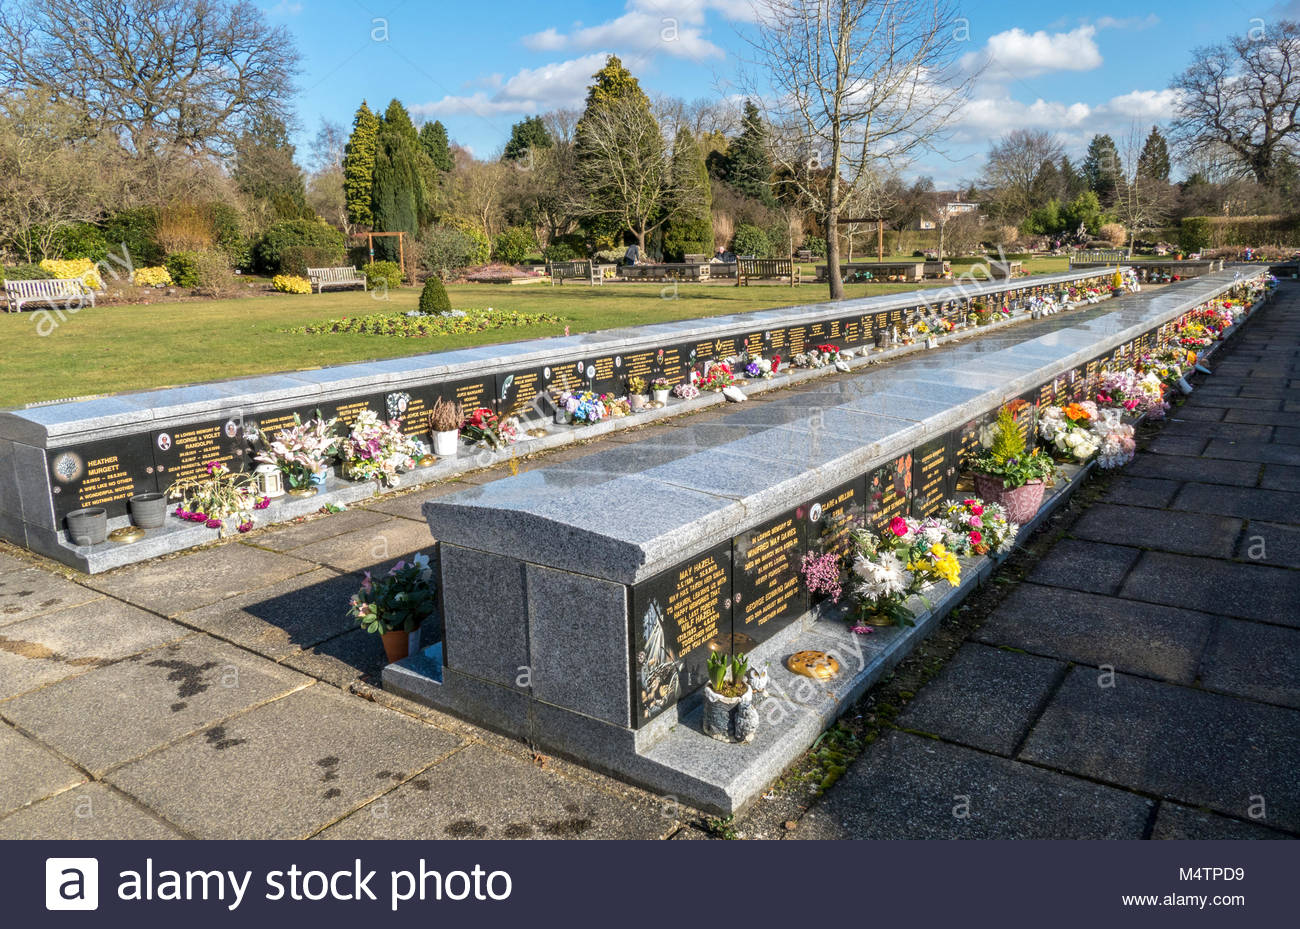 Flower displays at rows of granite memorials, at a peaceful site with beautiful gardens. Breakspear Crematorium, - Stock Image